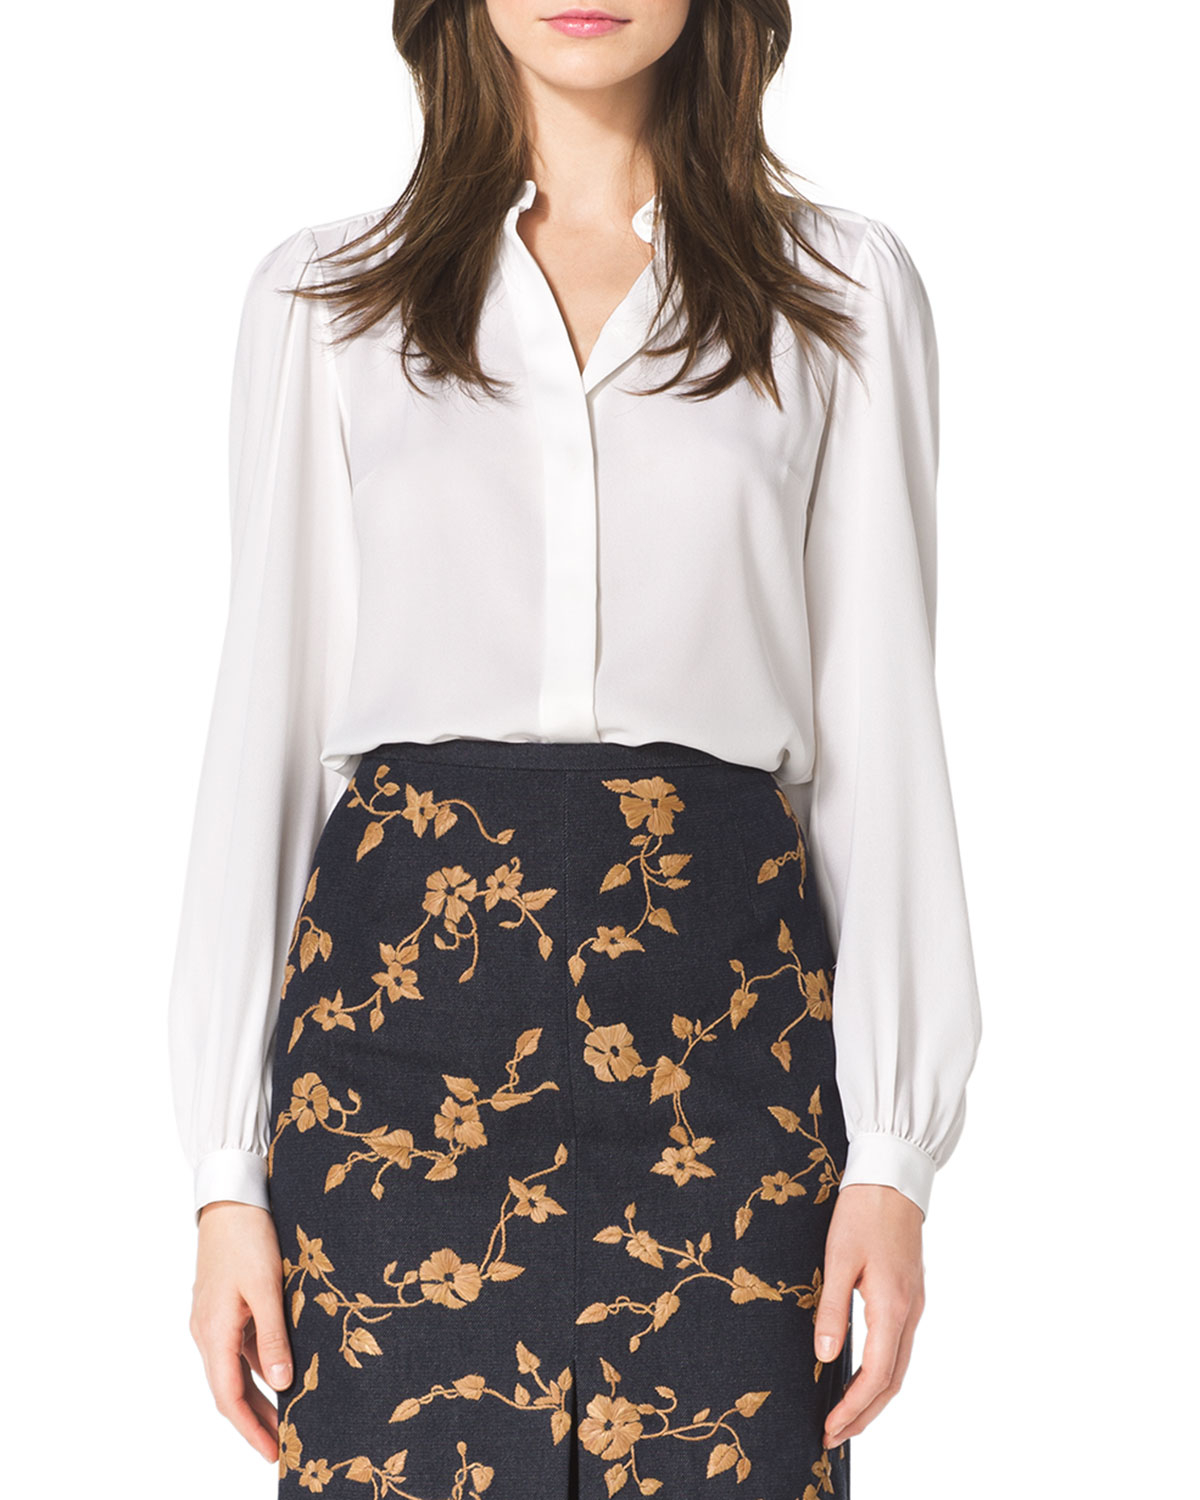 c036082a8f850 Lyst - Michael Kors Long-sleeve Silk Blouse in White